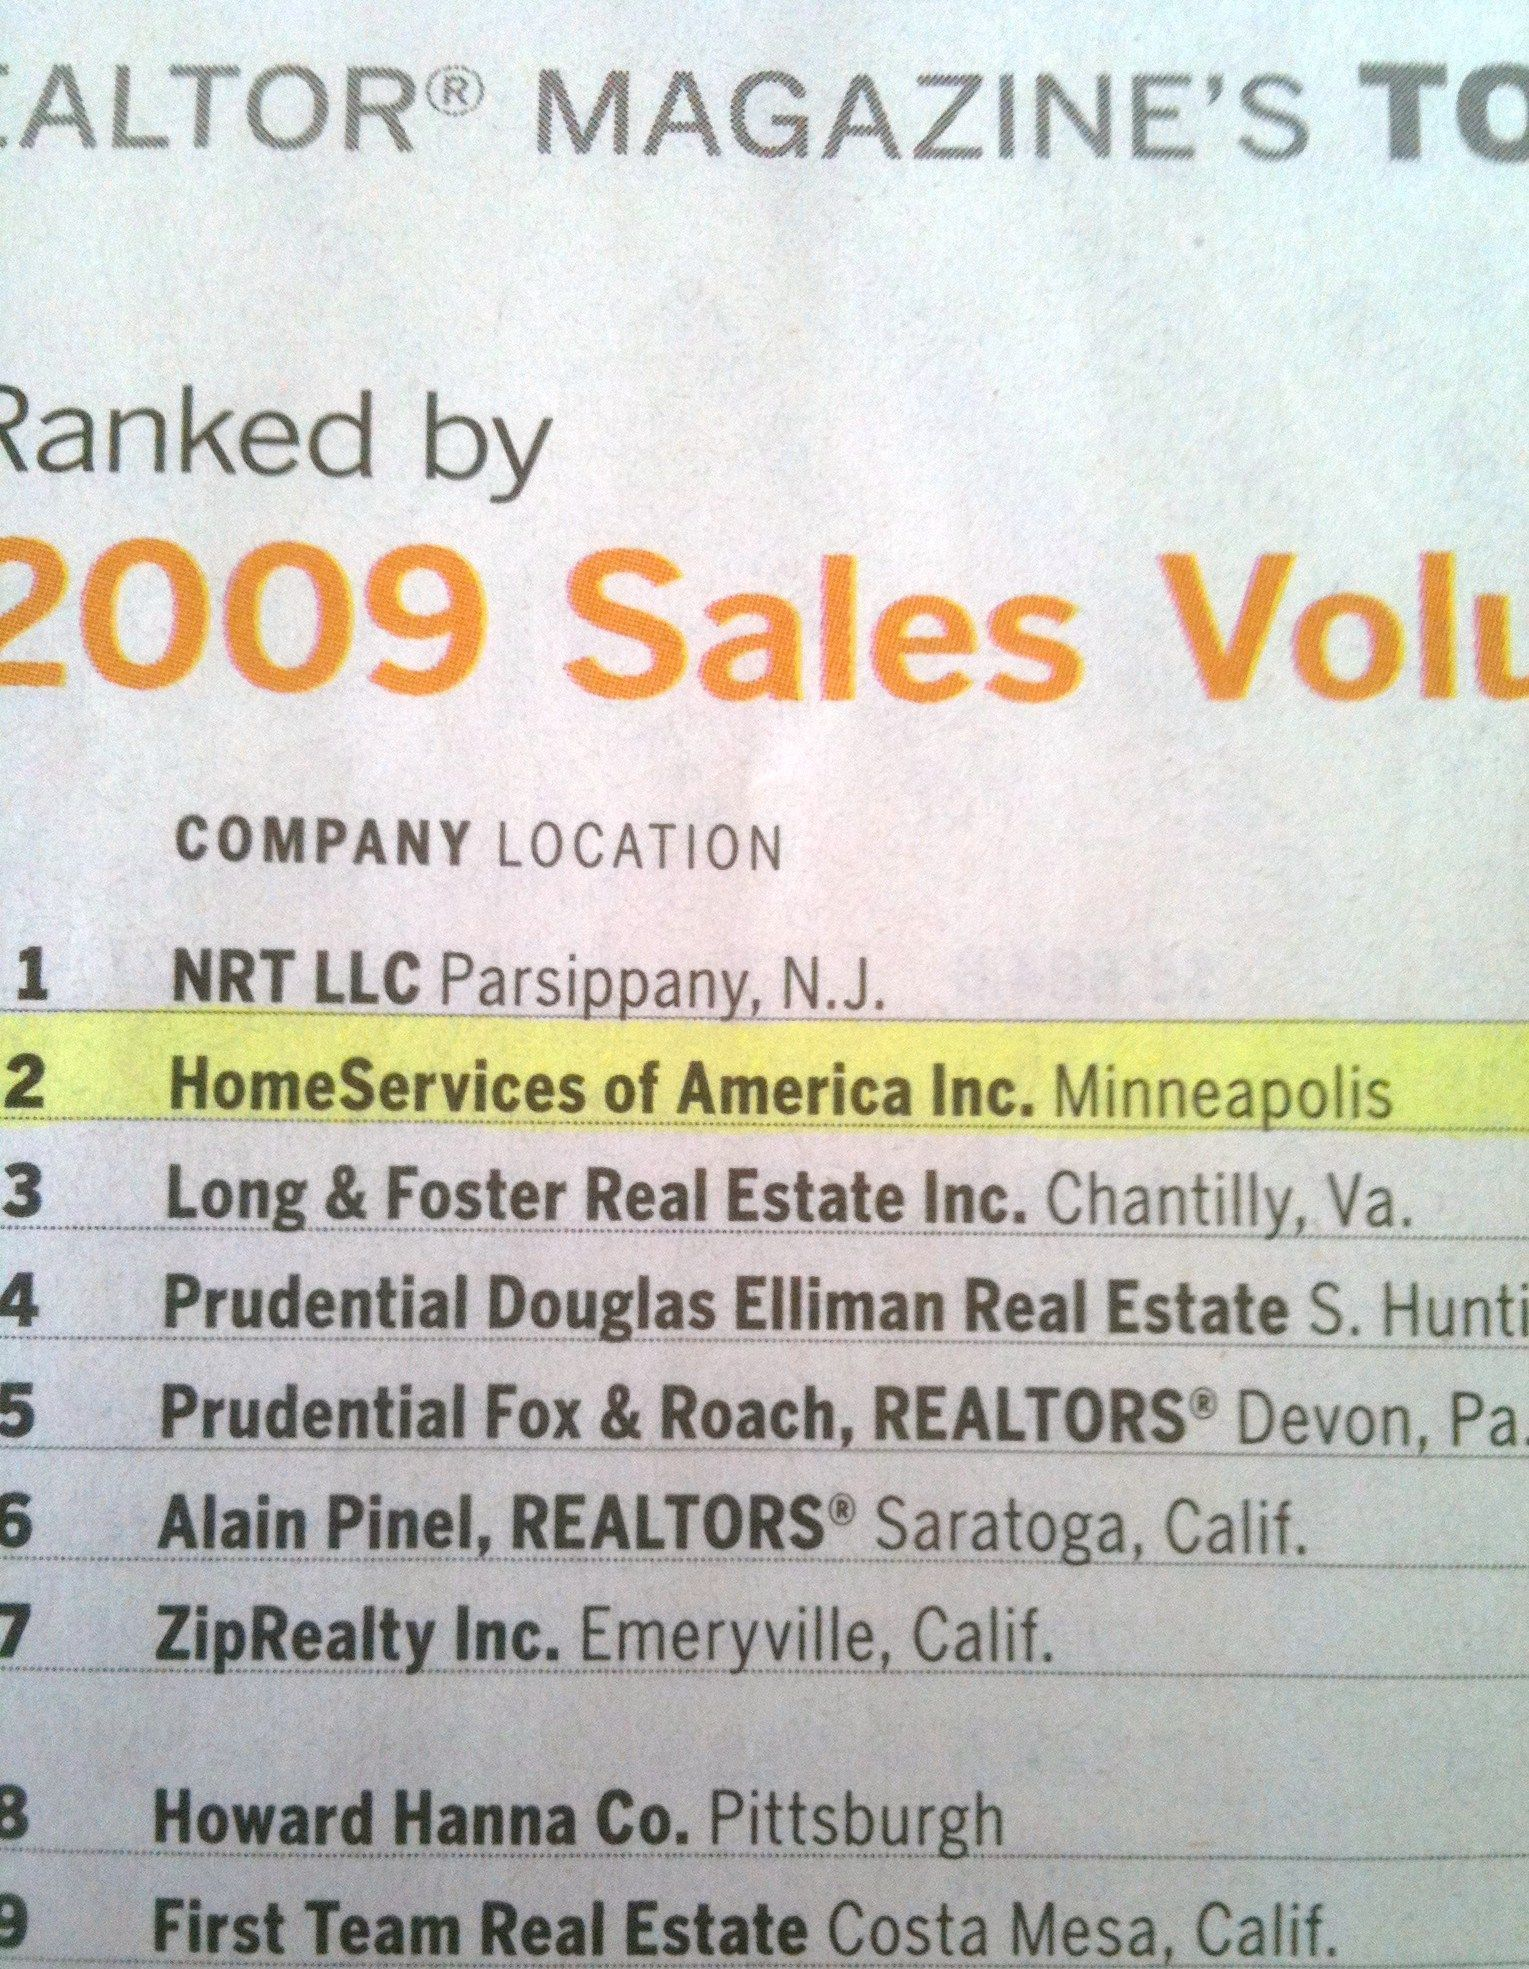 Home Services of America #2 Sales volume 2009